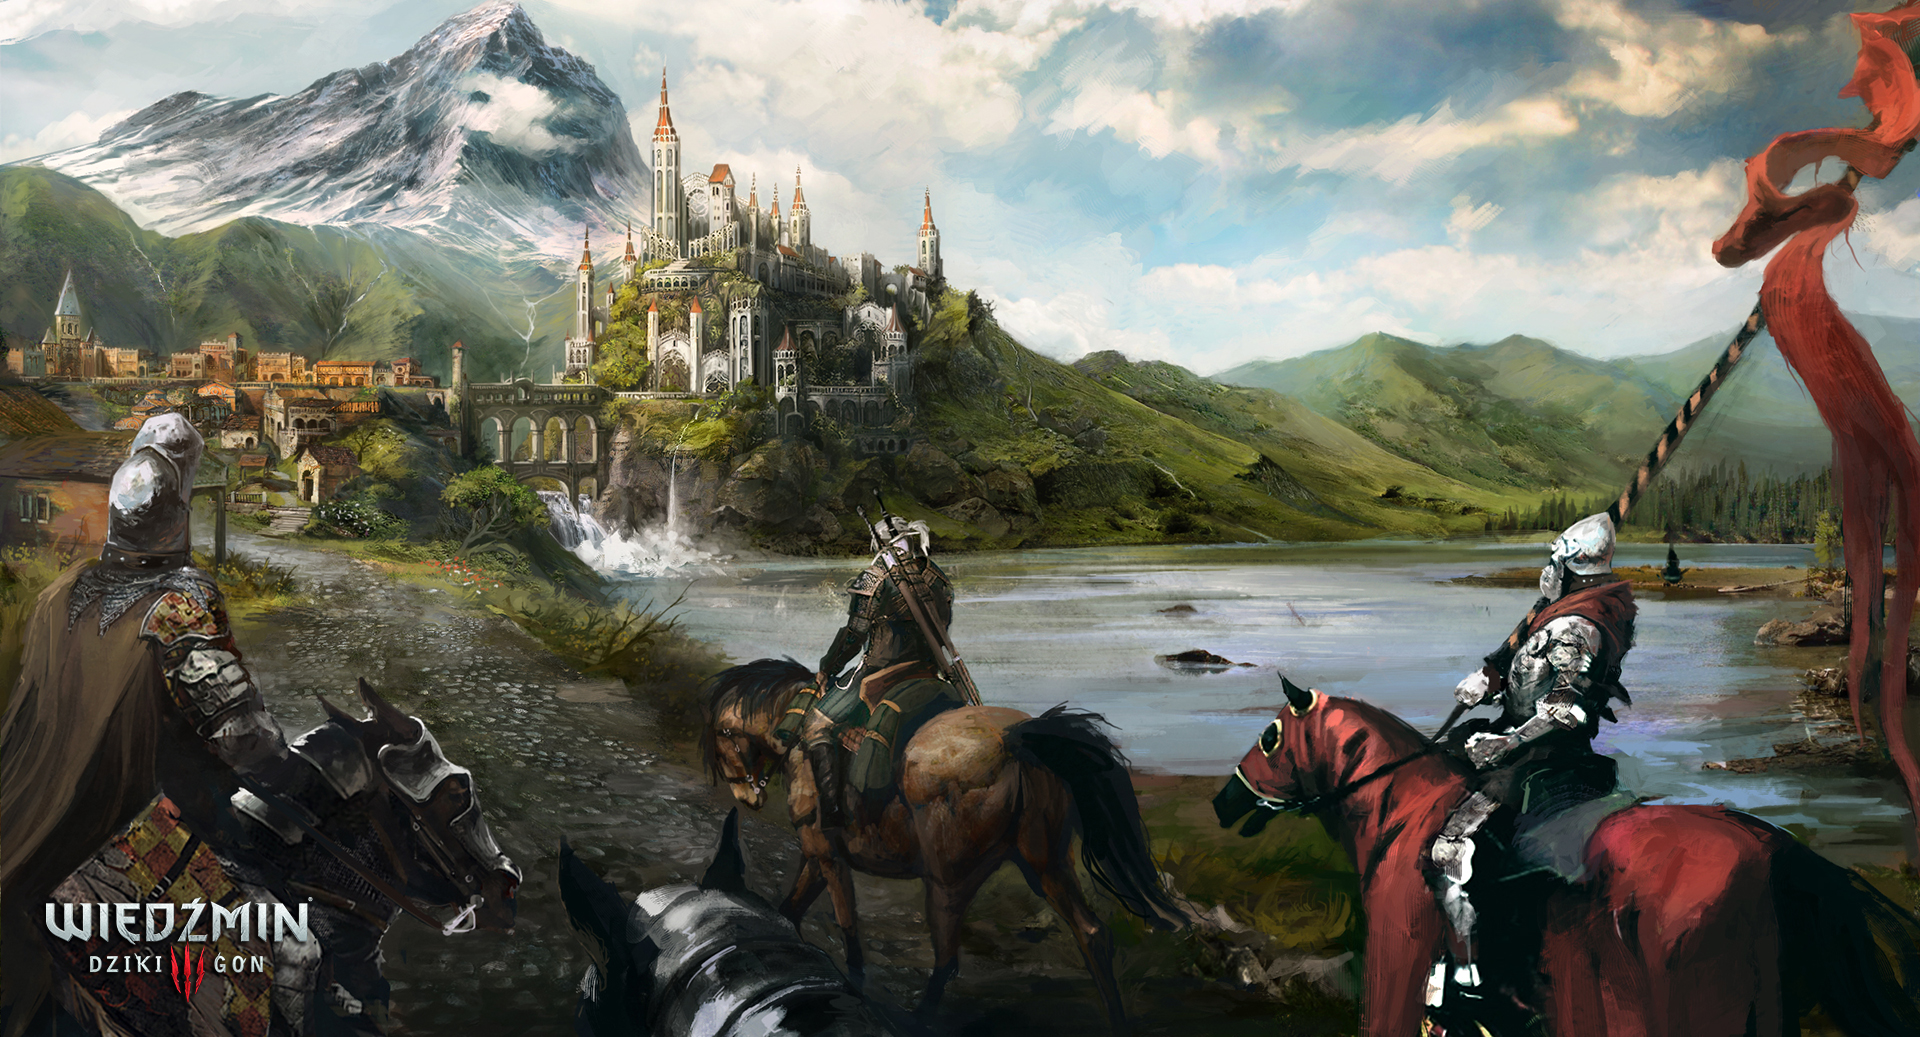 The_Witcher_3_Wild_Hunt_Blood_and_Wine_Road_to_Palace_PL